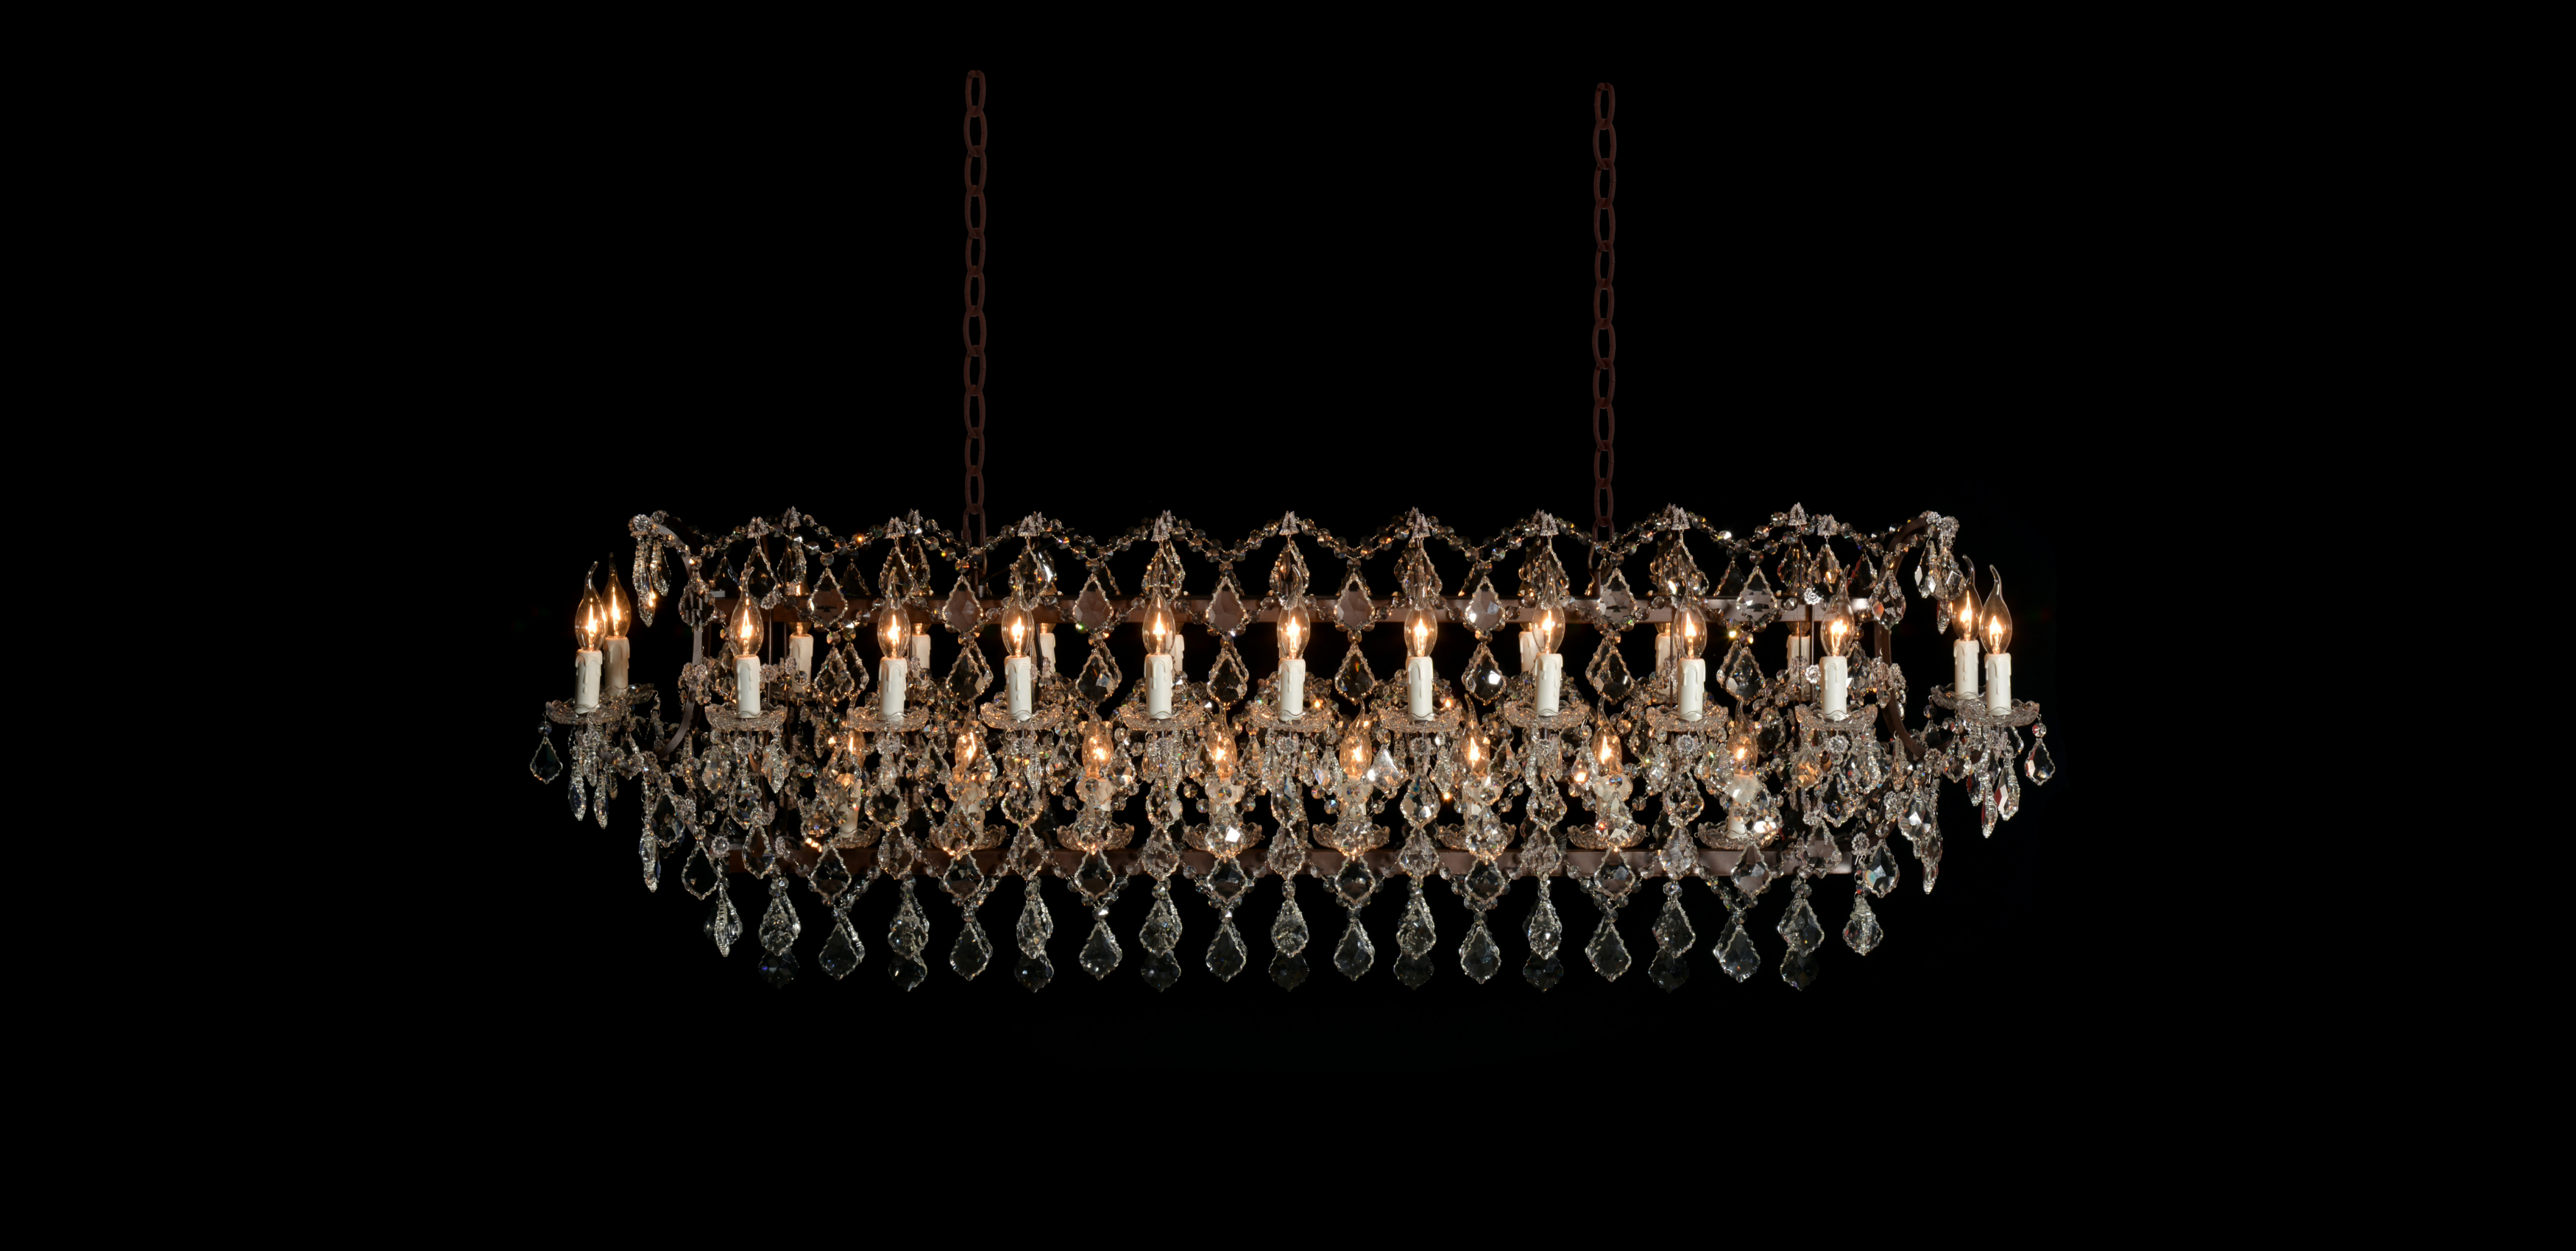 Timothy Oulton Crystal Chandelier - Rectangular Chandelier in Natural